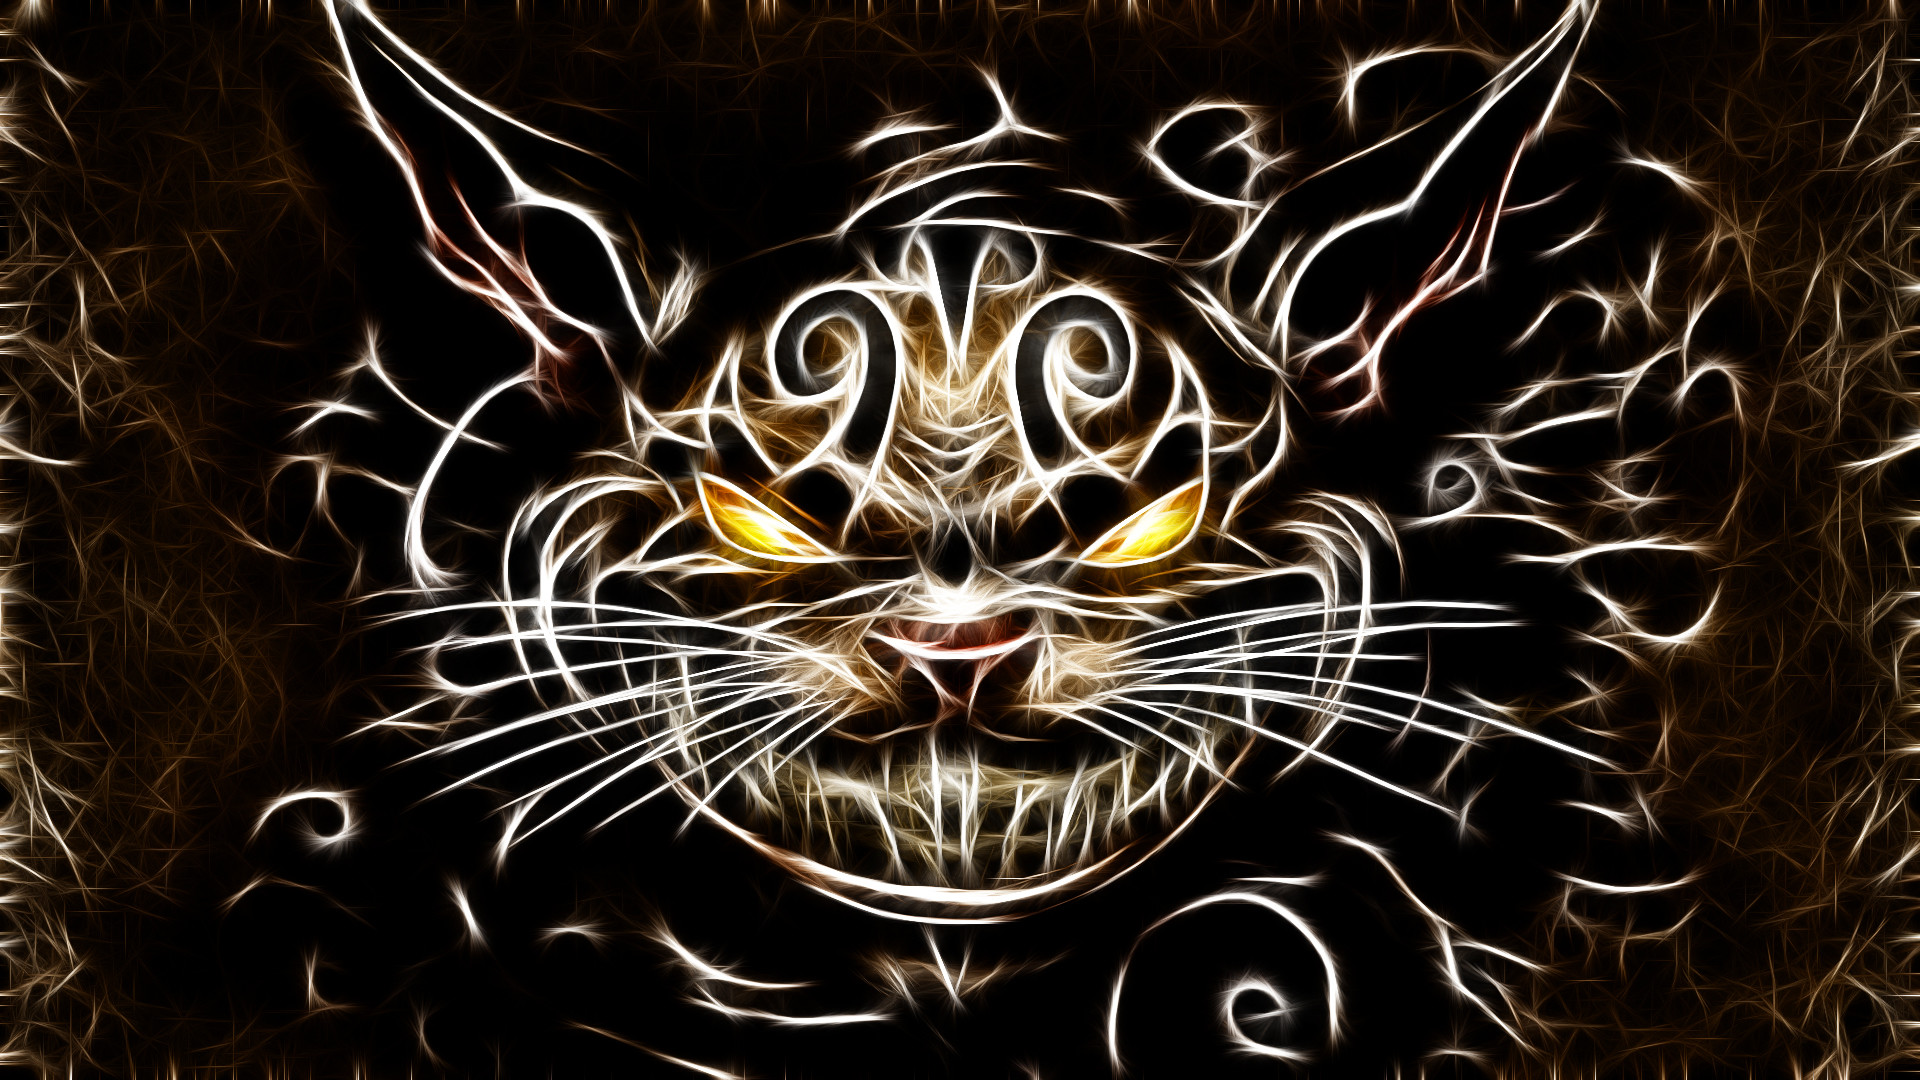 1920x1080 Image - Cats fractalius cheshire cat american mcgees alice desktop   hd-wallpaper-1197515.jpg | Creepypasta Wiki | FANDOM powered by  Wikia